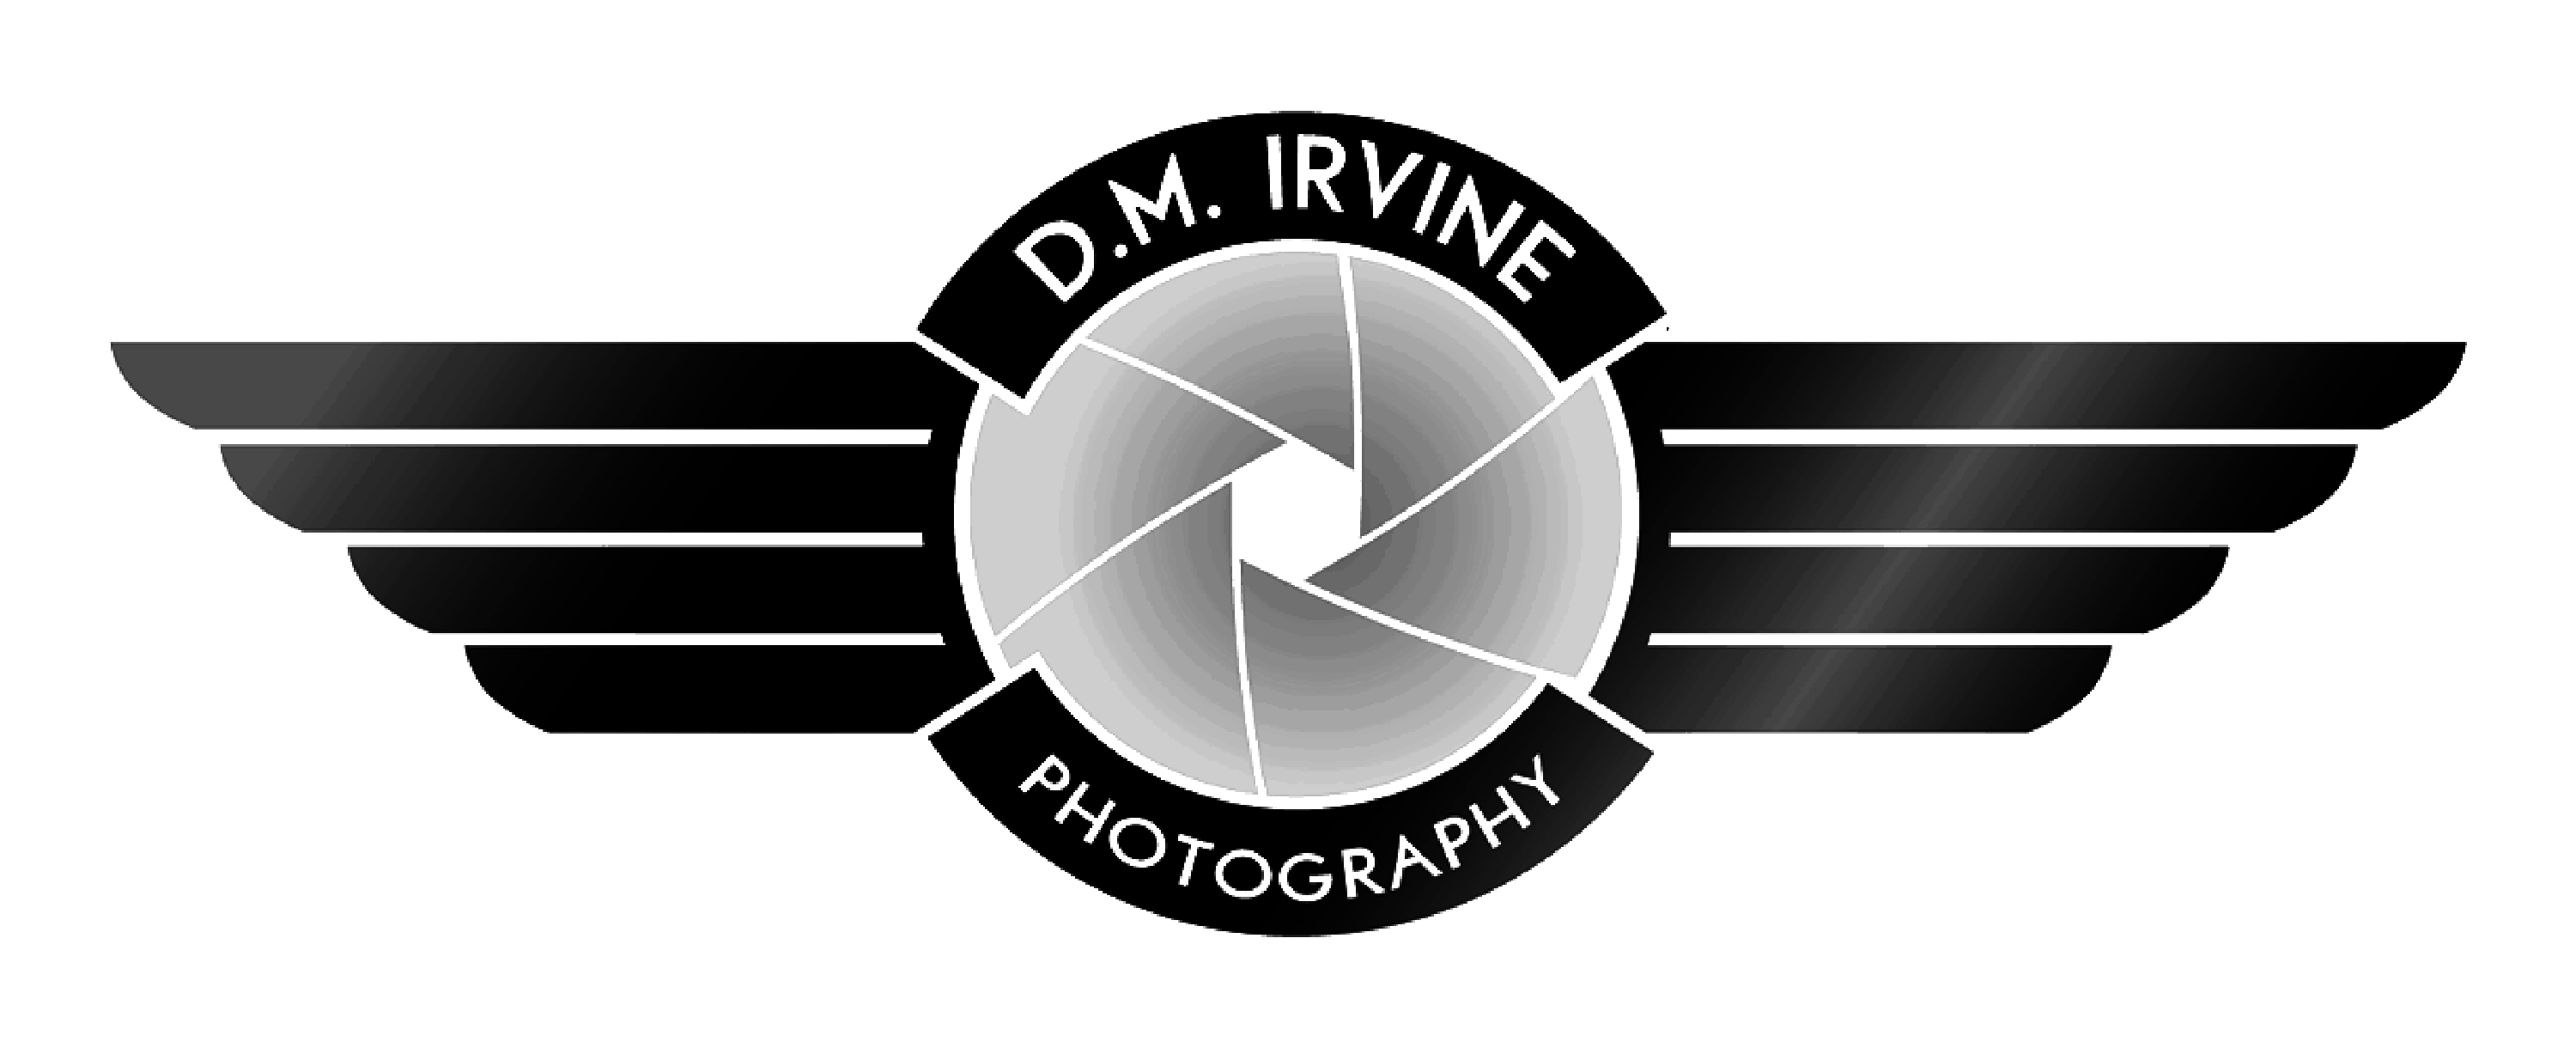 dmirvine photography